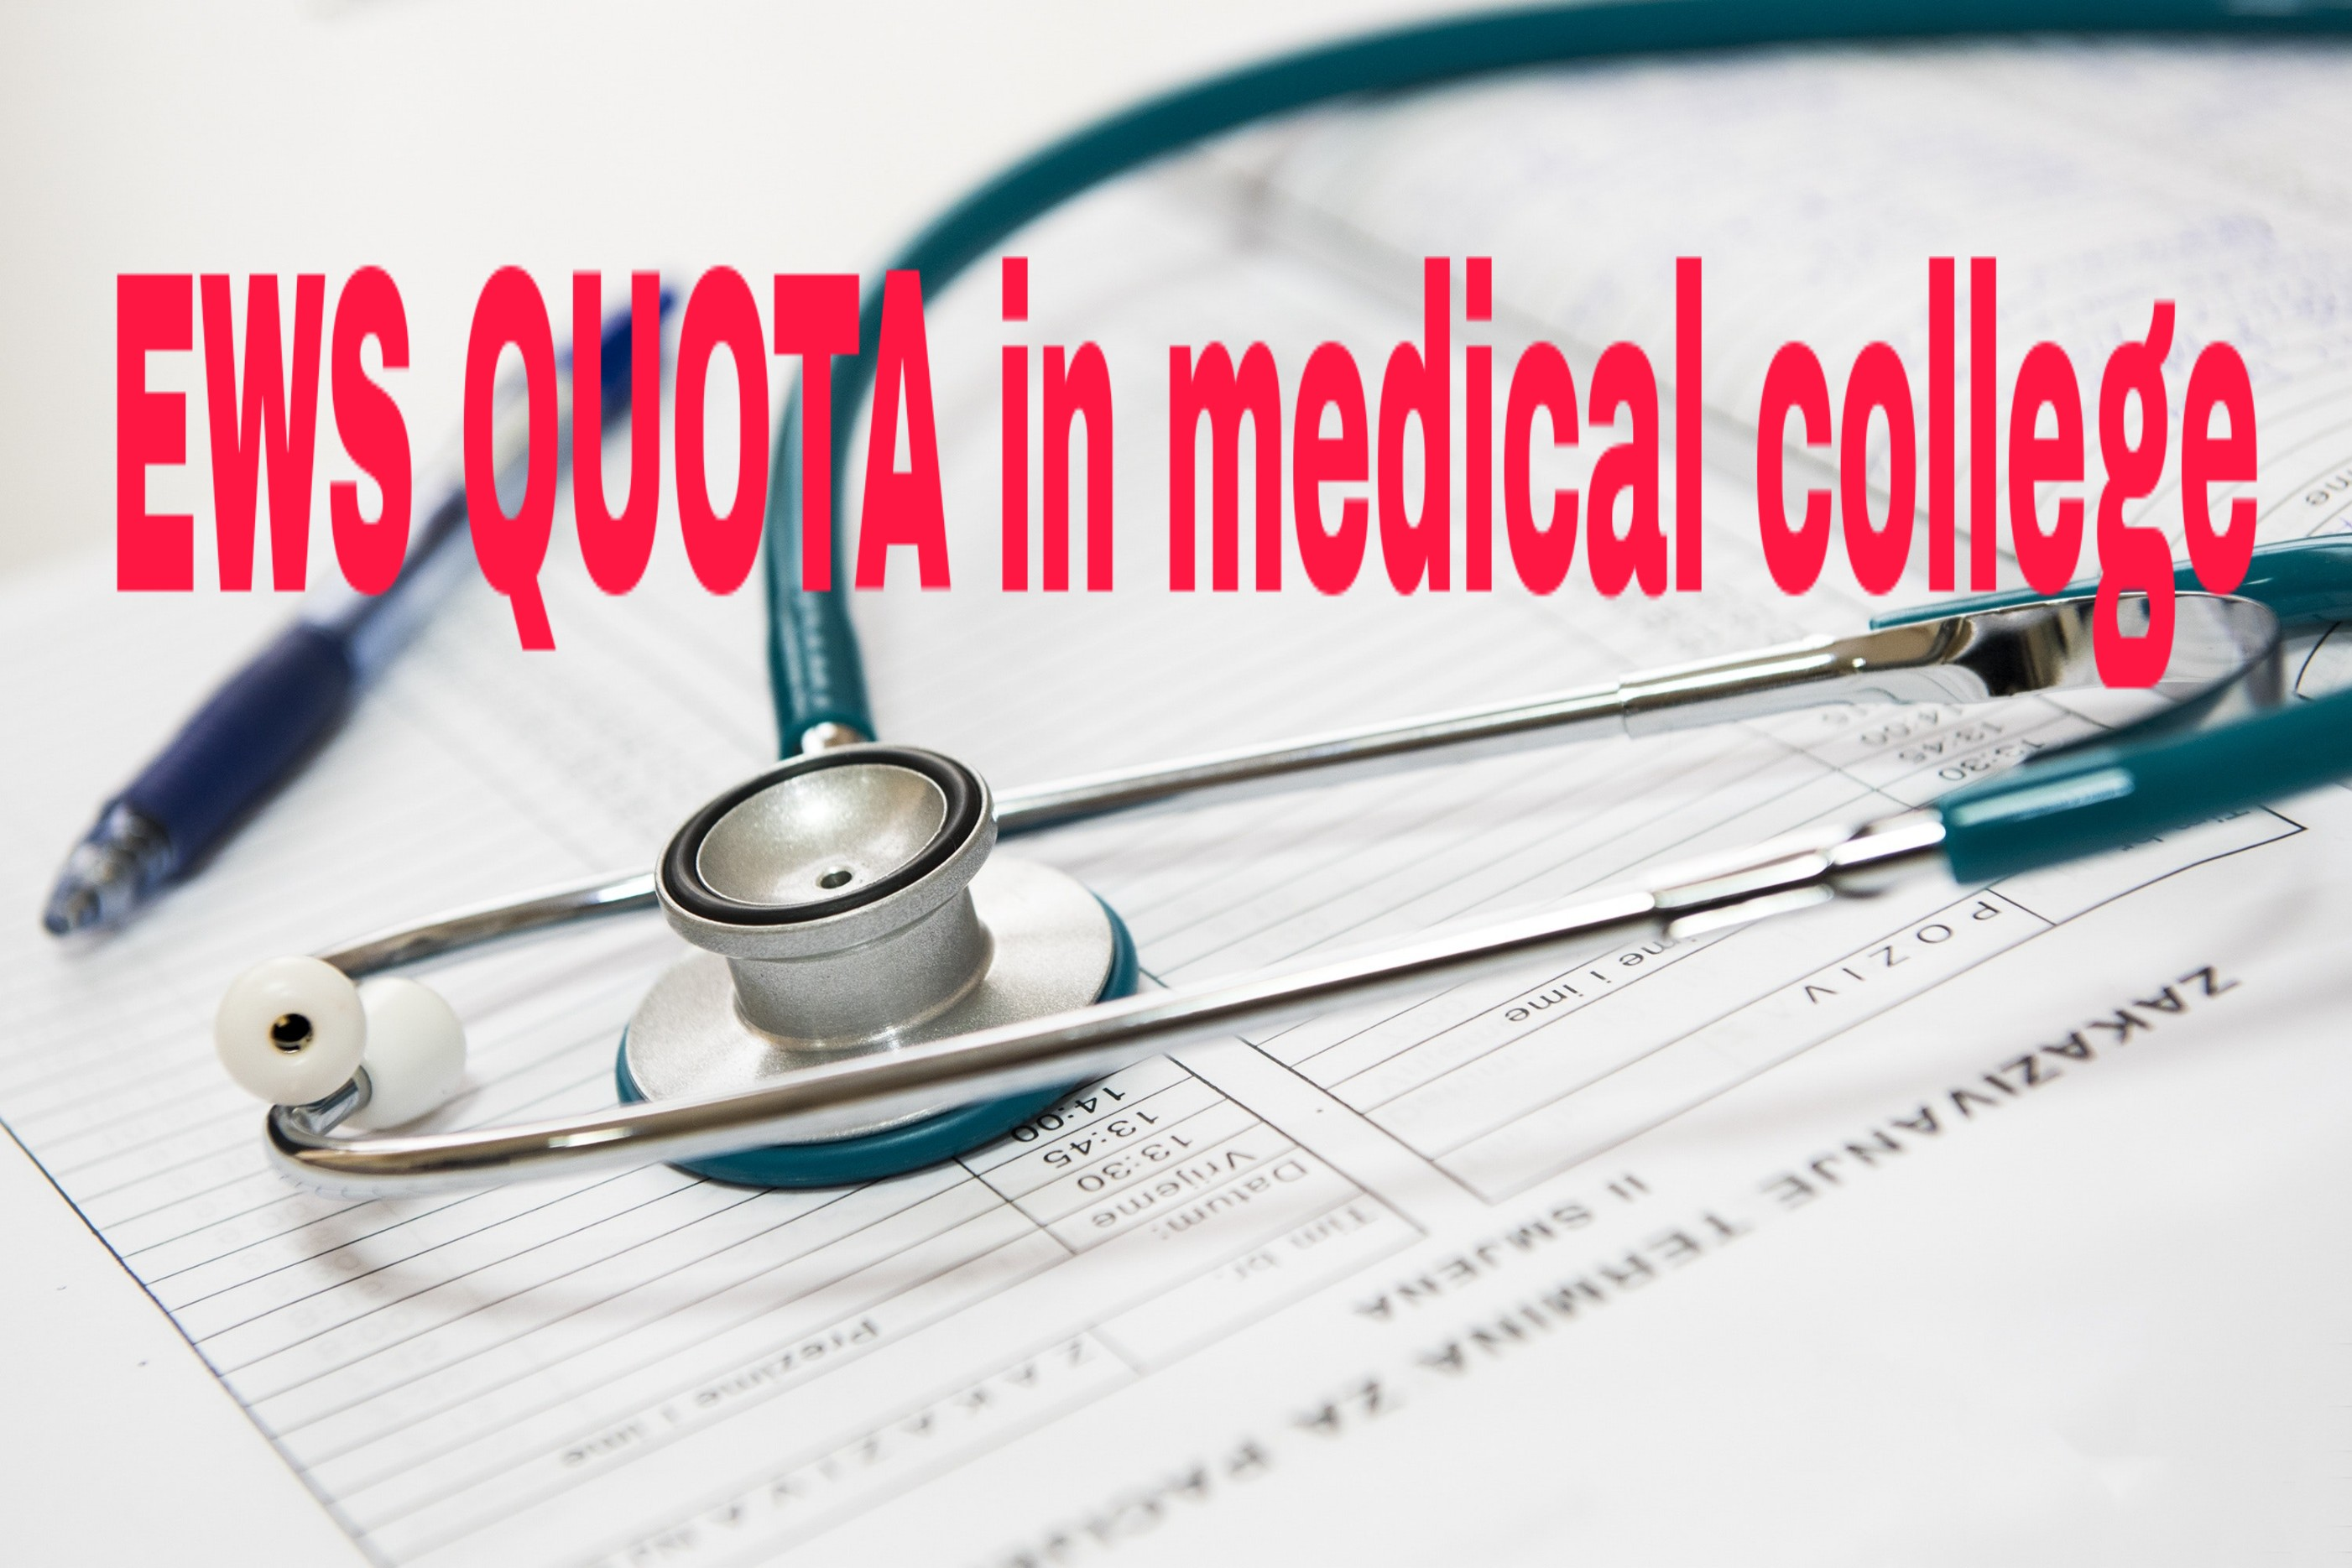 EWS QUOTA in medical college